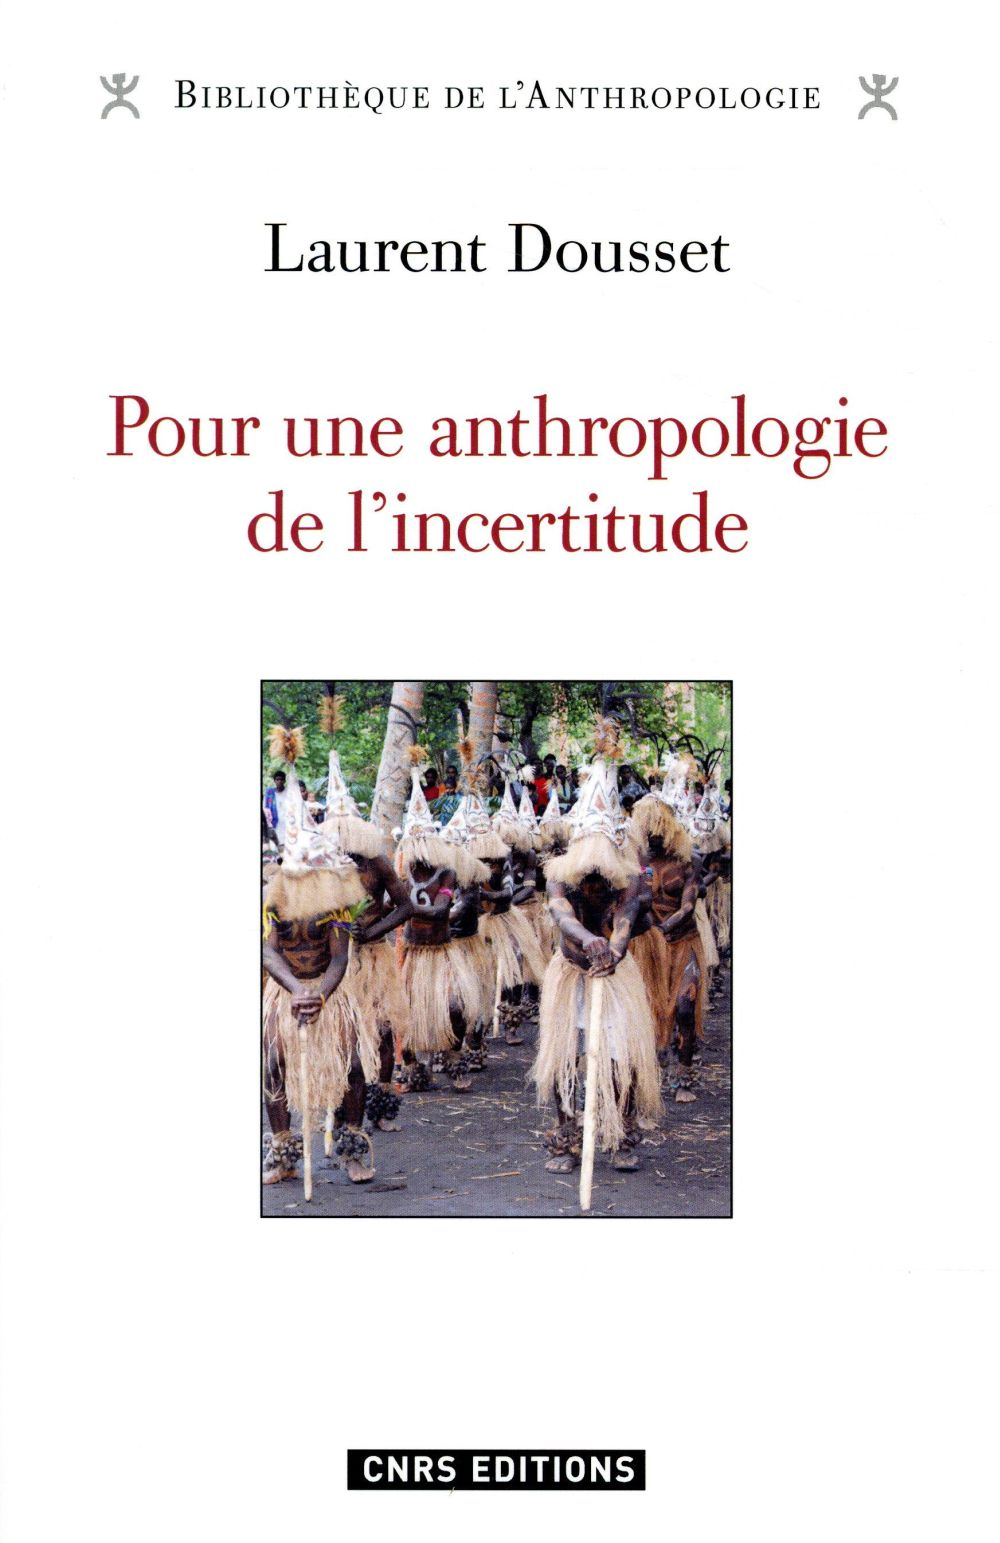 POUR UNE ANTHROPOLOGIE DE L'INCERTITUDE